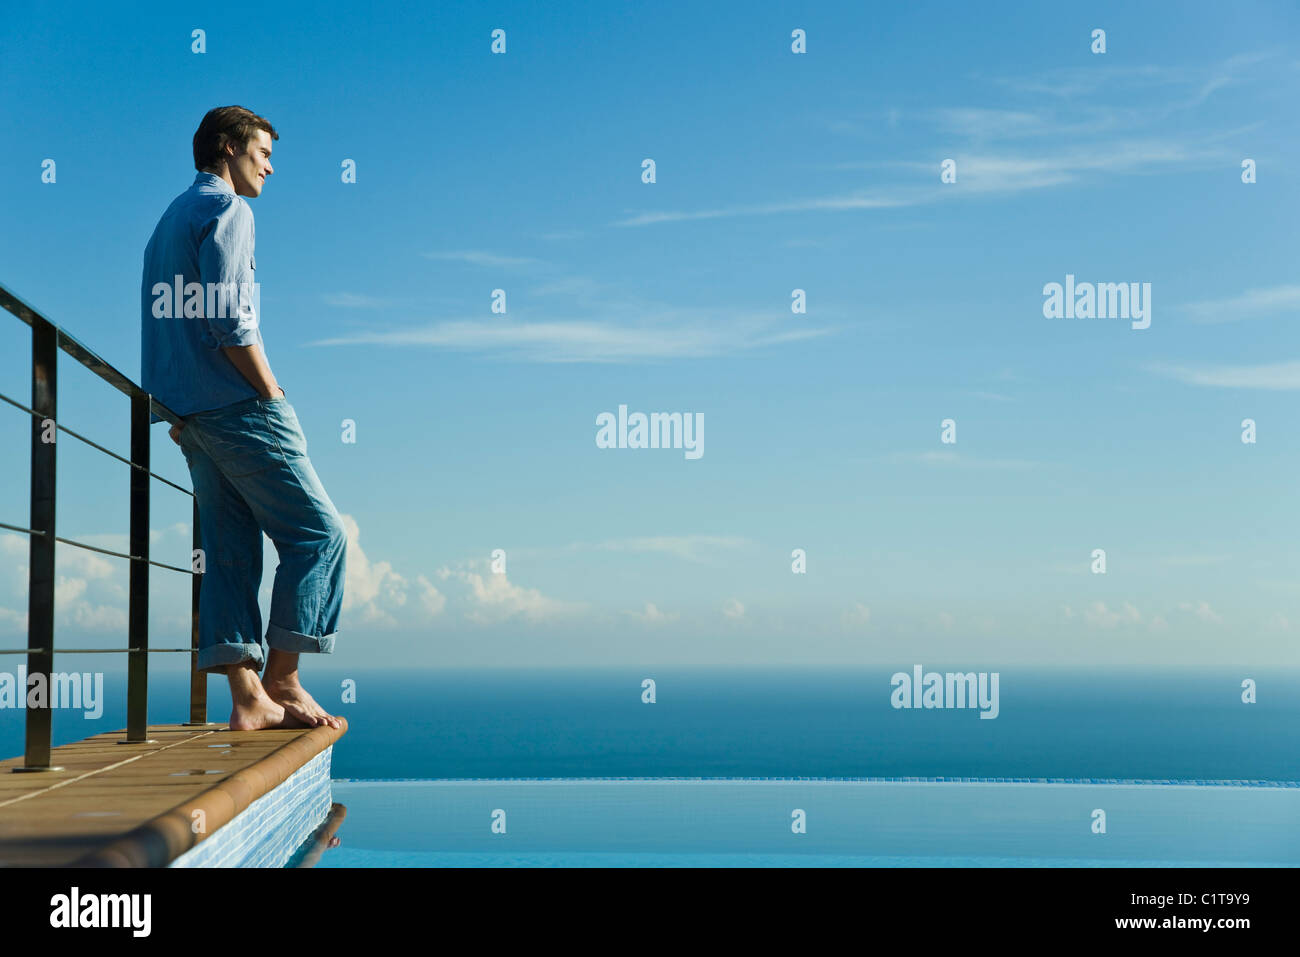 Man standing at edge of infinity pool, looking at view - Stock Image